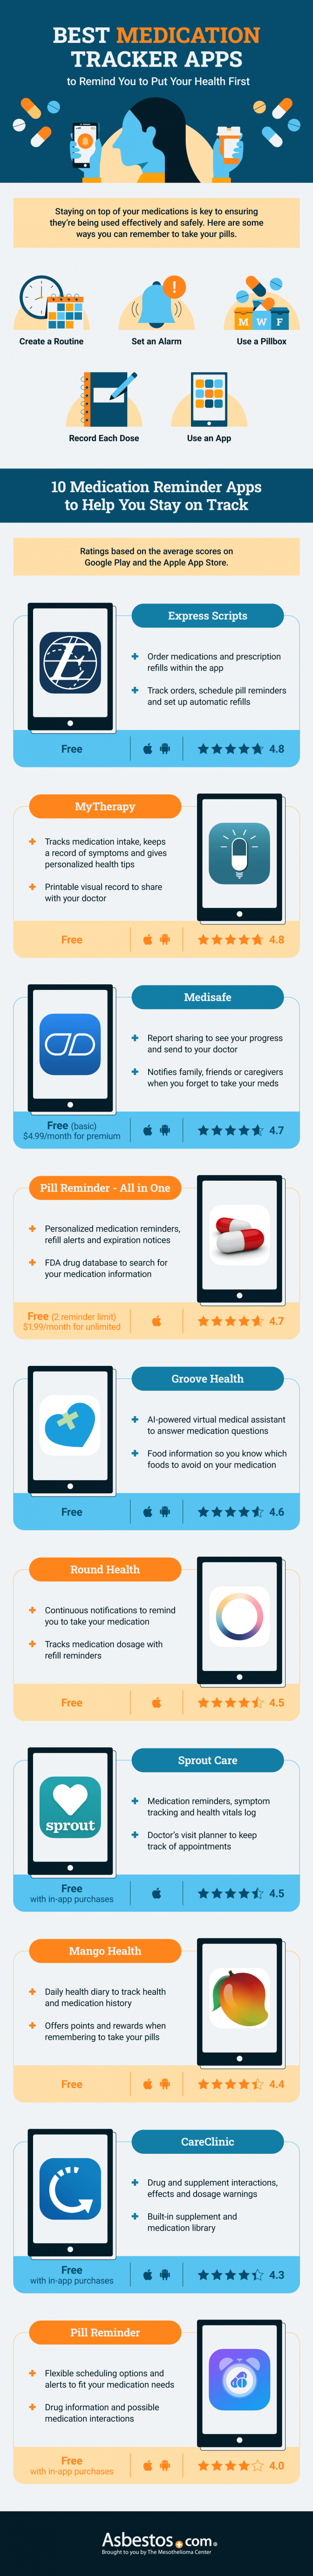 Best Medication Tracker Apps infographic